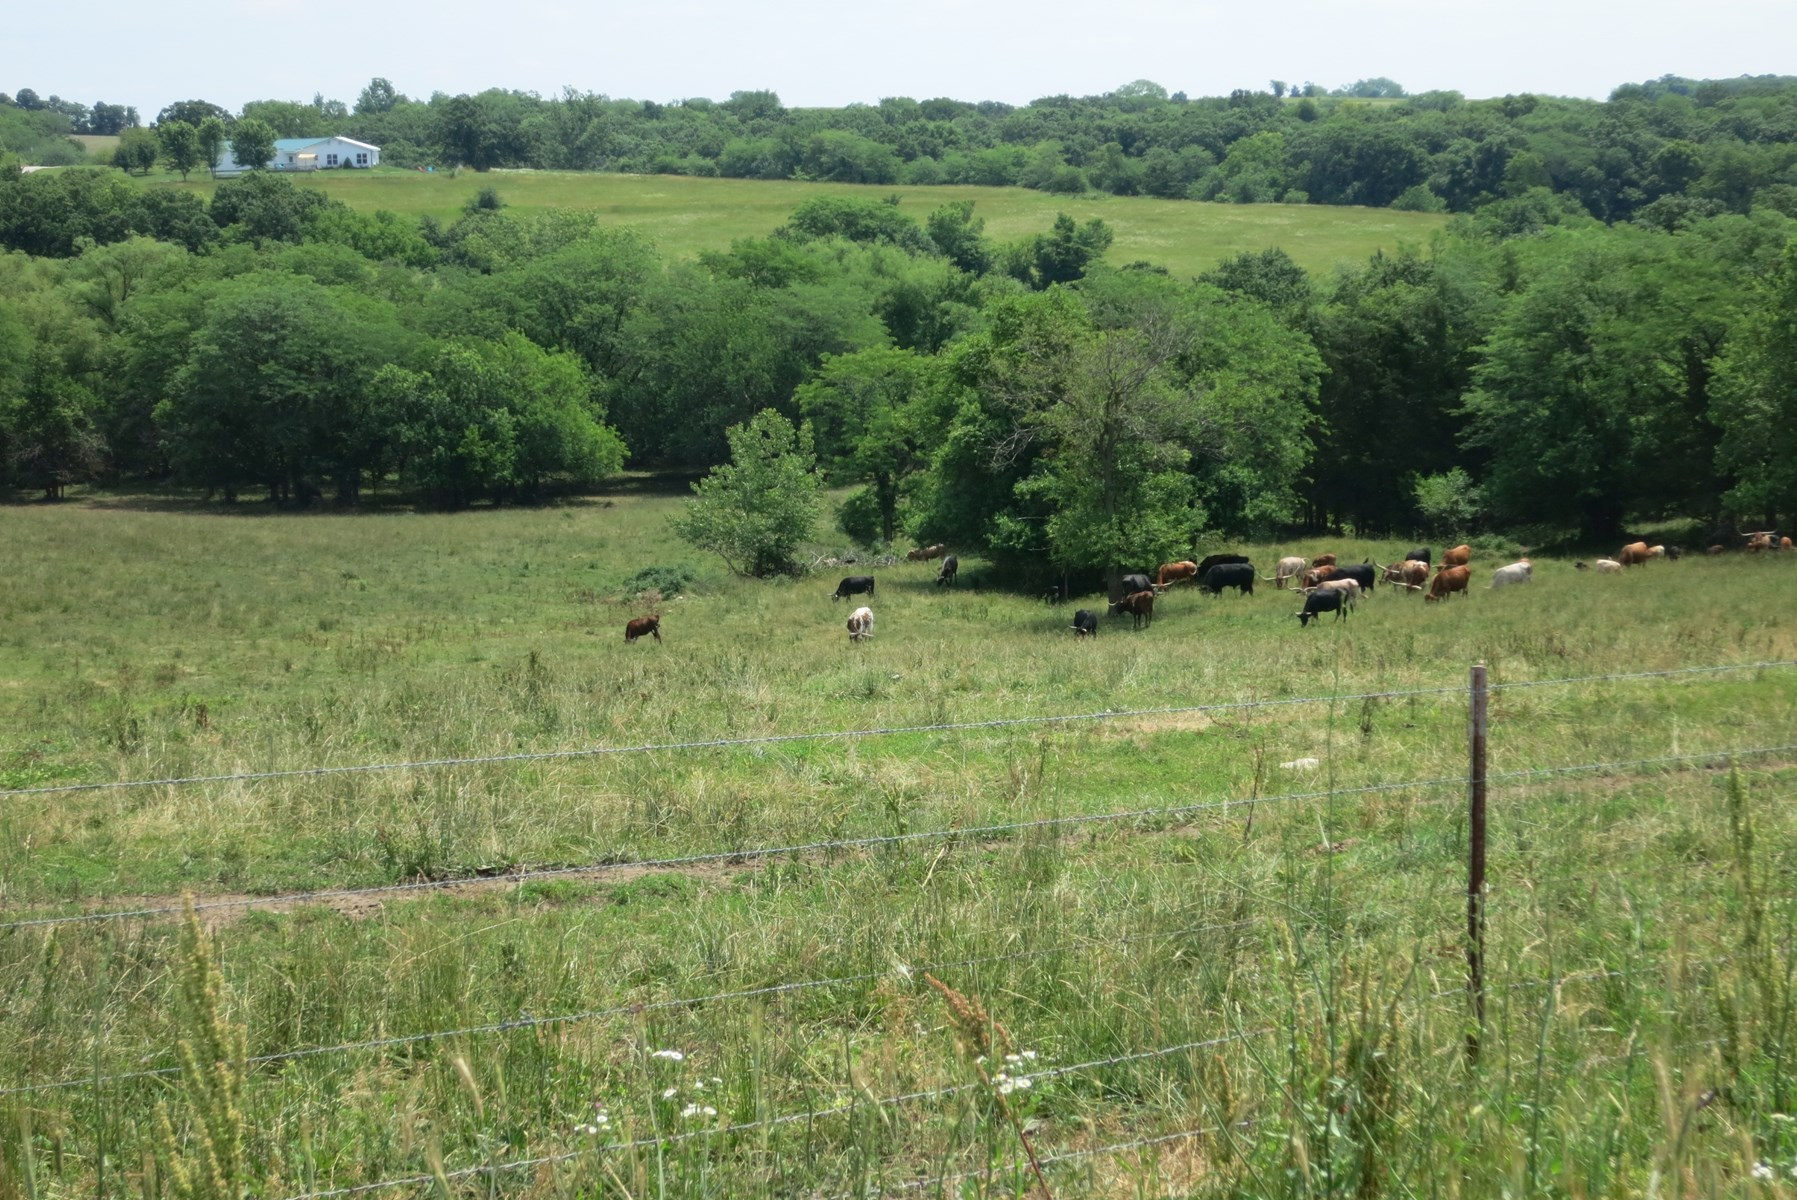 For Sale 40 Acre Tract in Northwest Missouri